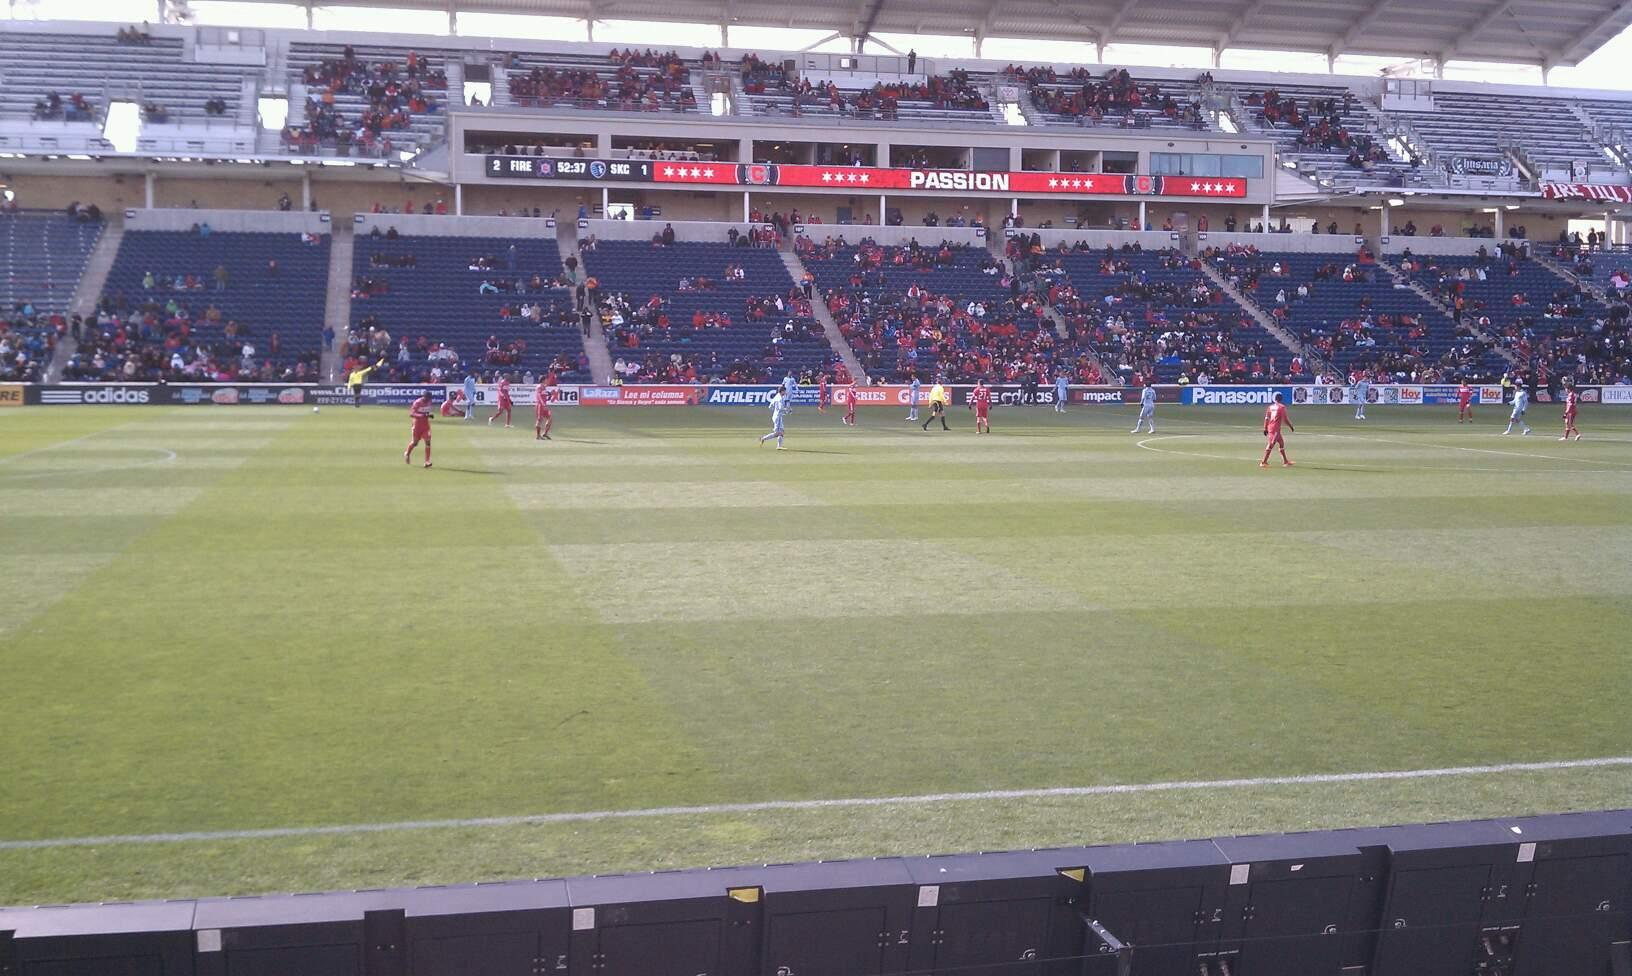 Toyota Park Section 130 Row 5 Seat 19